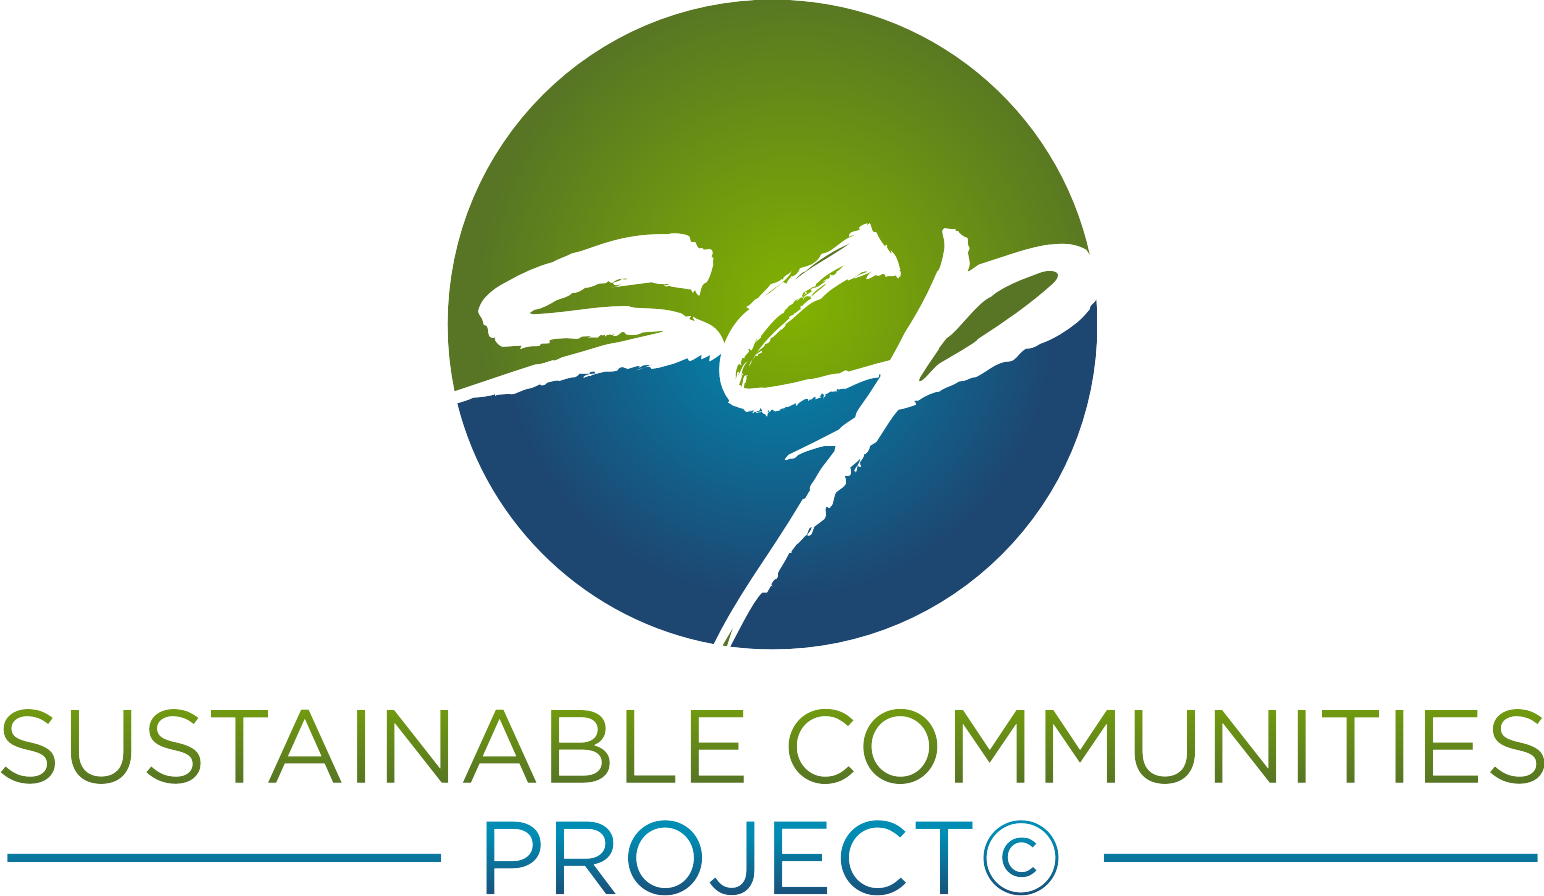 The Sustainable Communities Project®